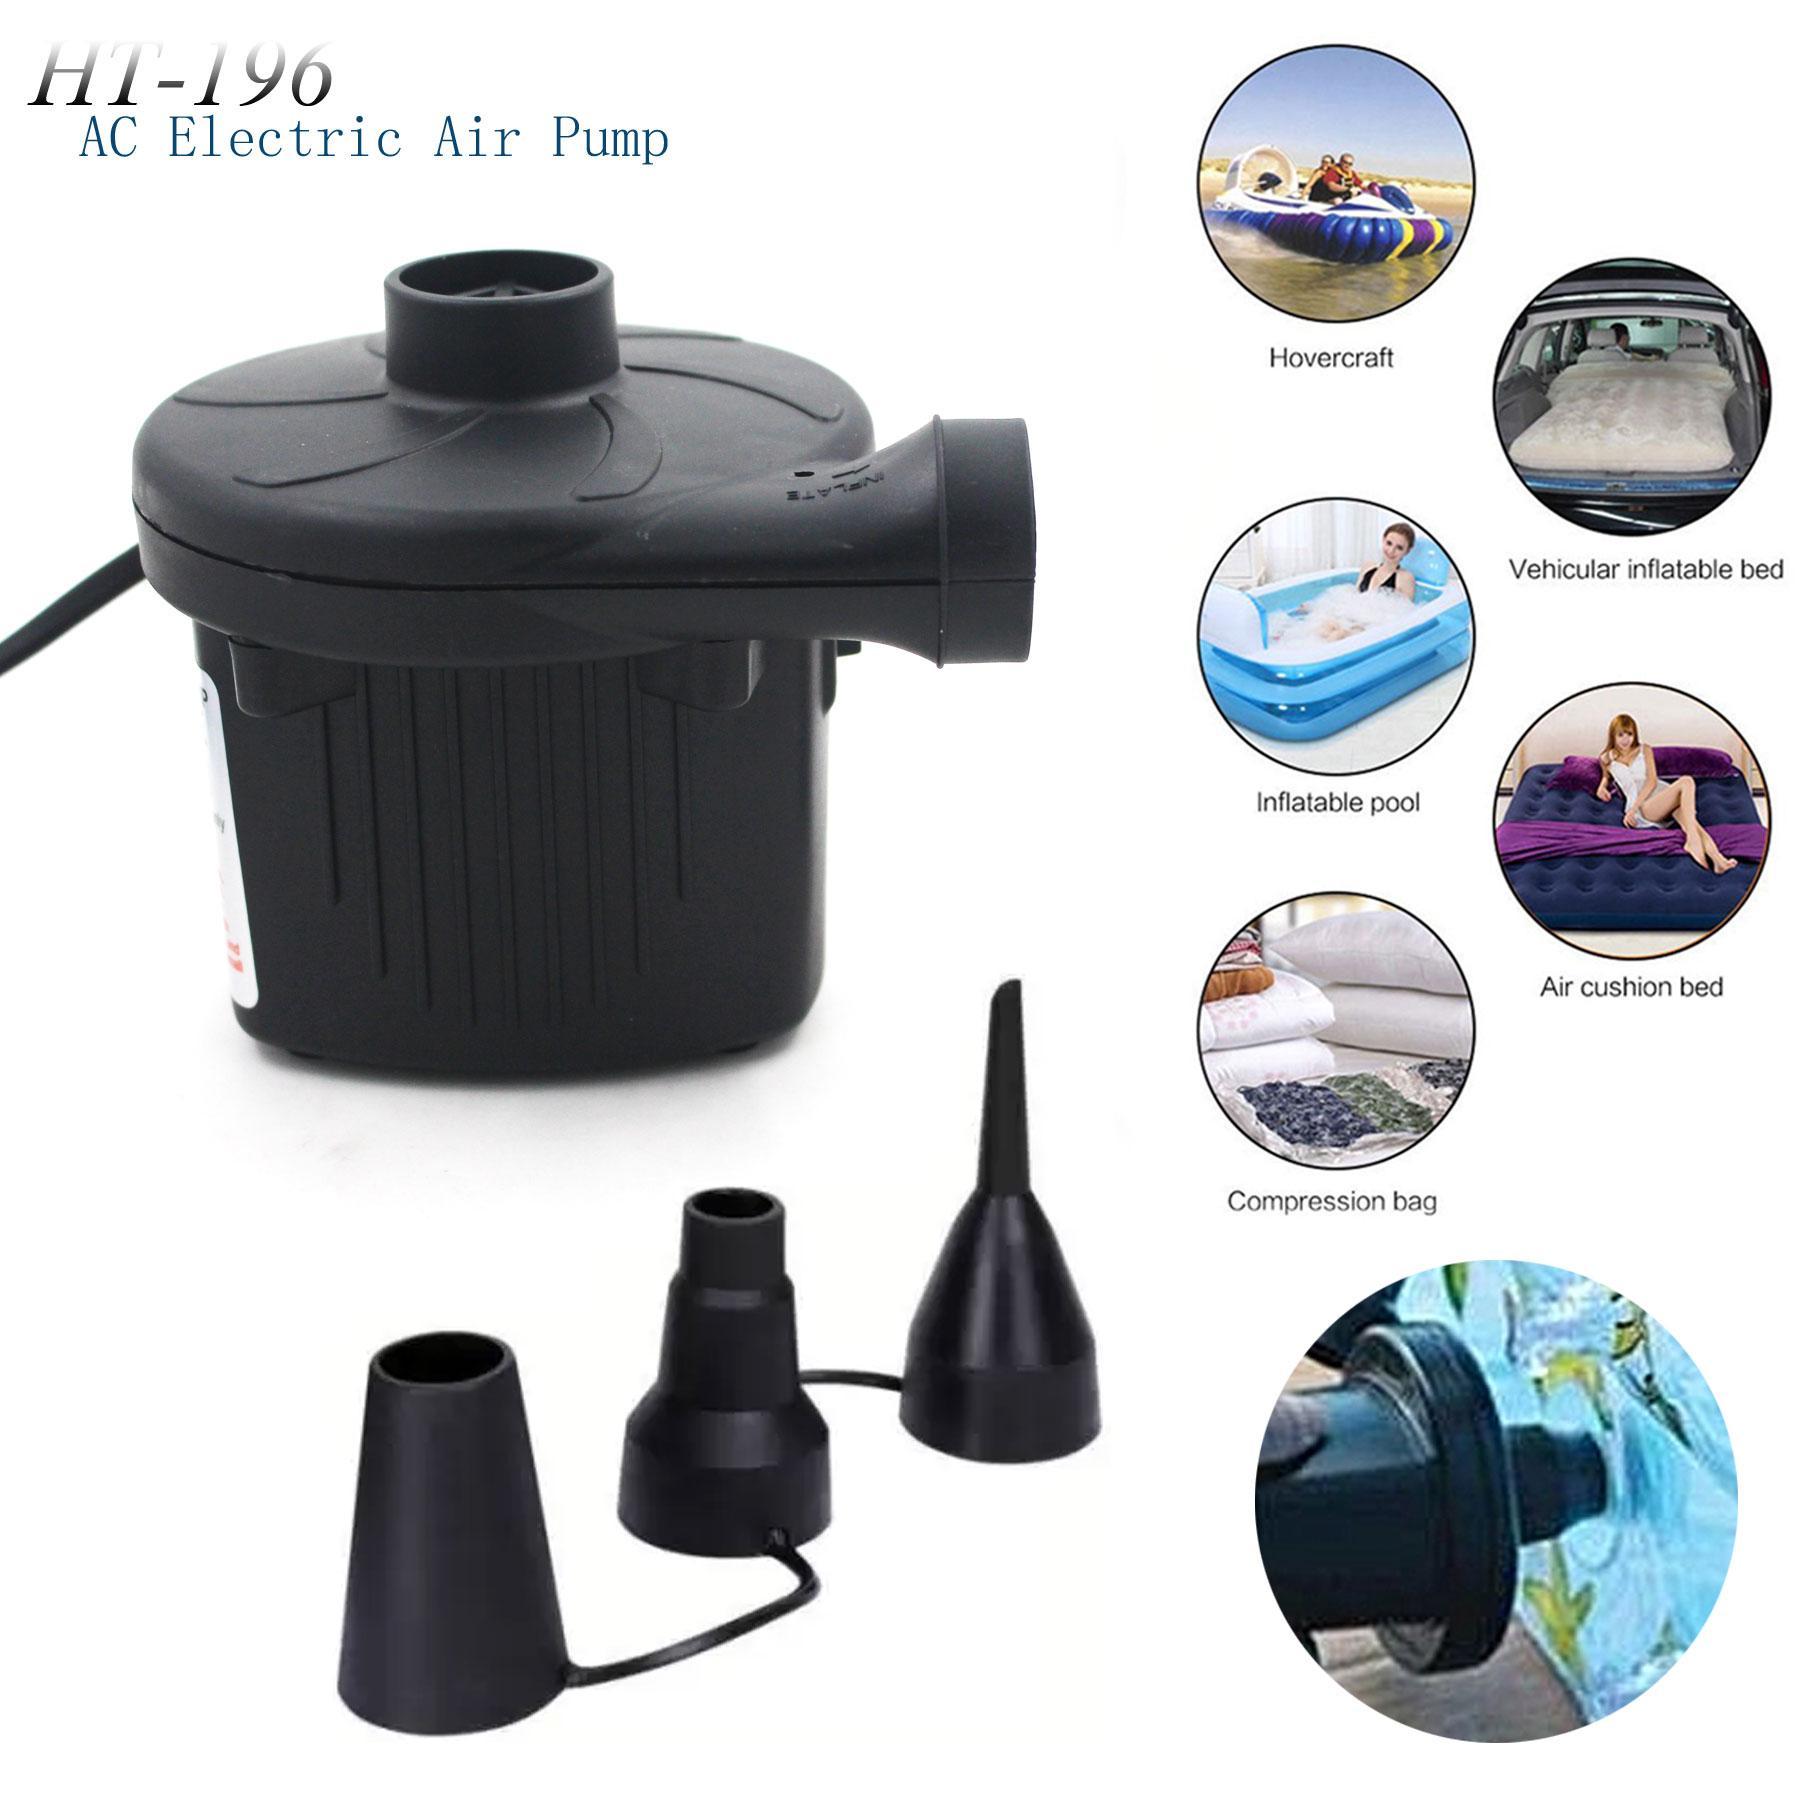 Ht-196 Ac Electric Air Pump Home Quickly Inflates & Deflates For All Inflatables (black) By Gonzalez General Merchandise.